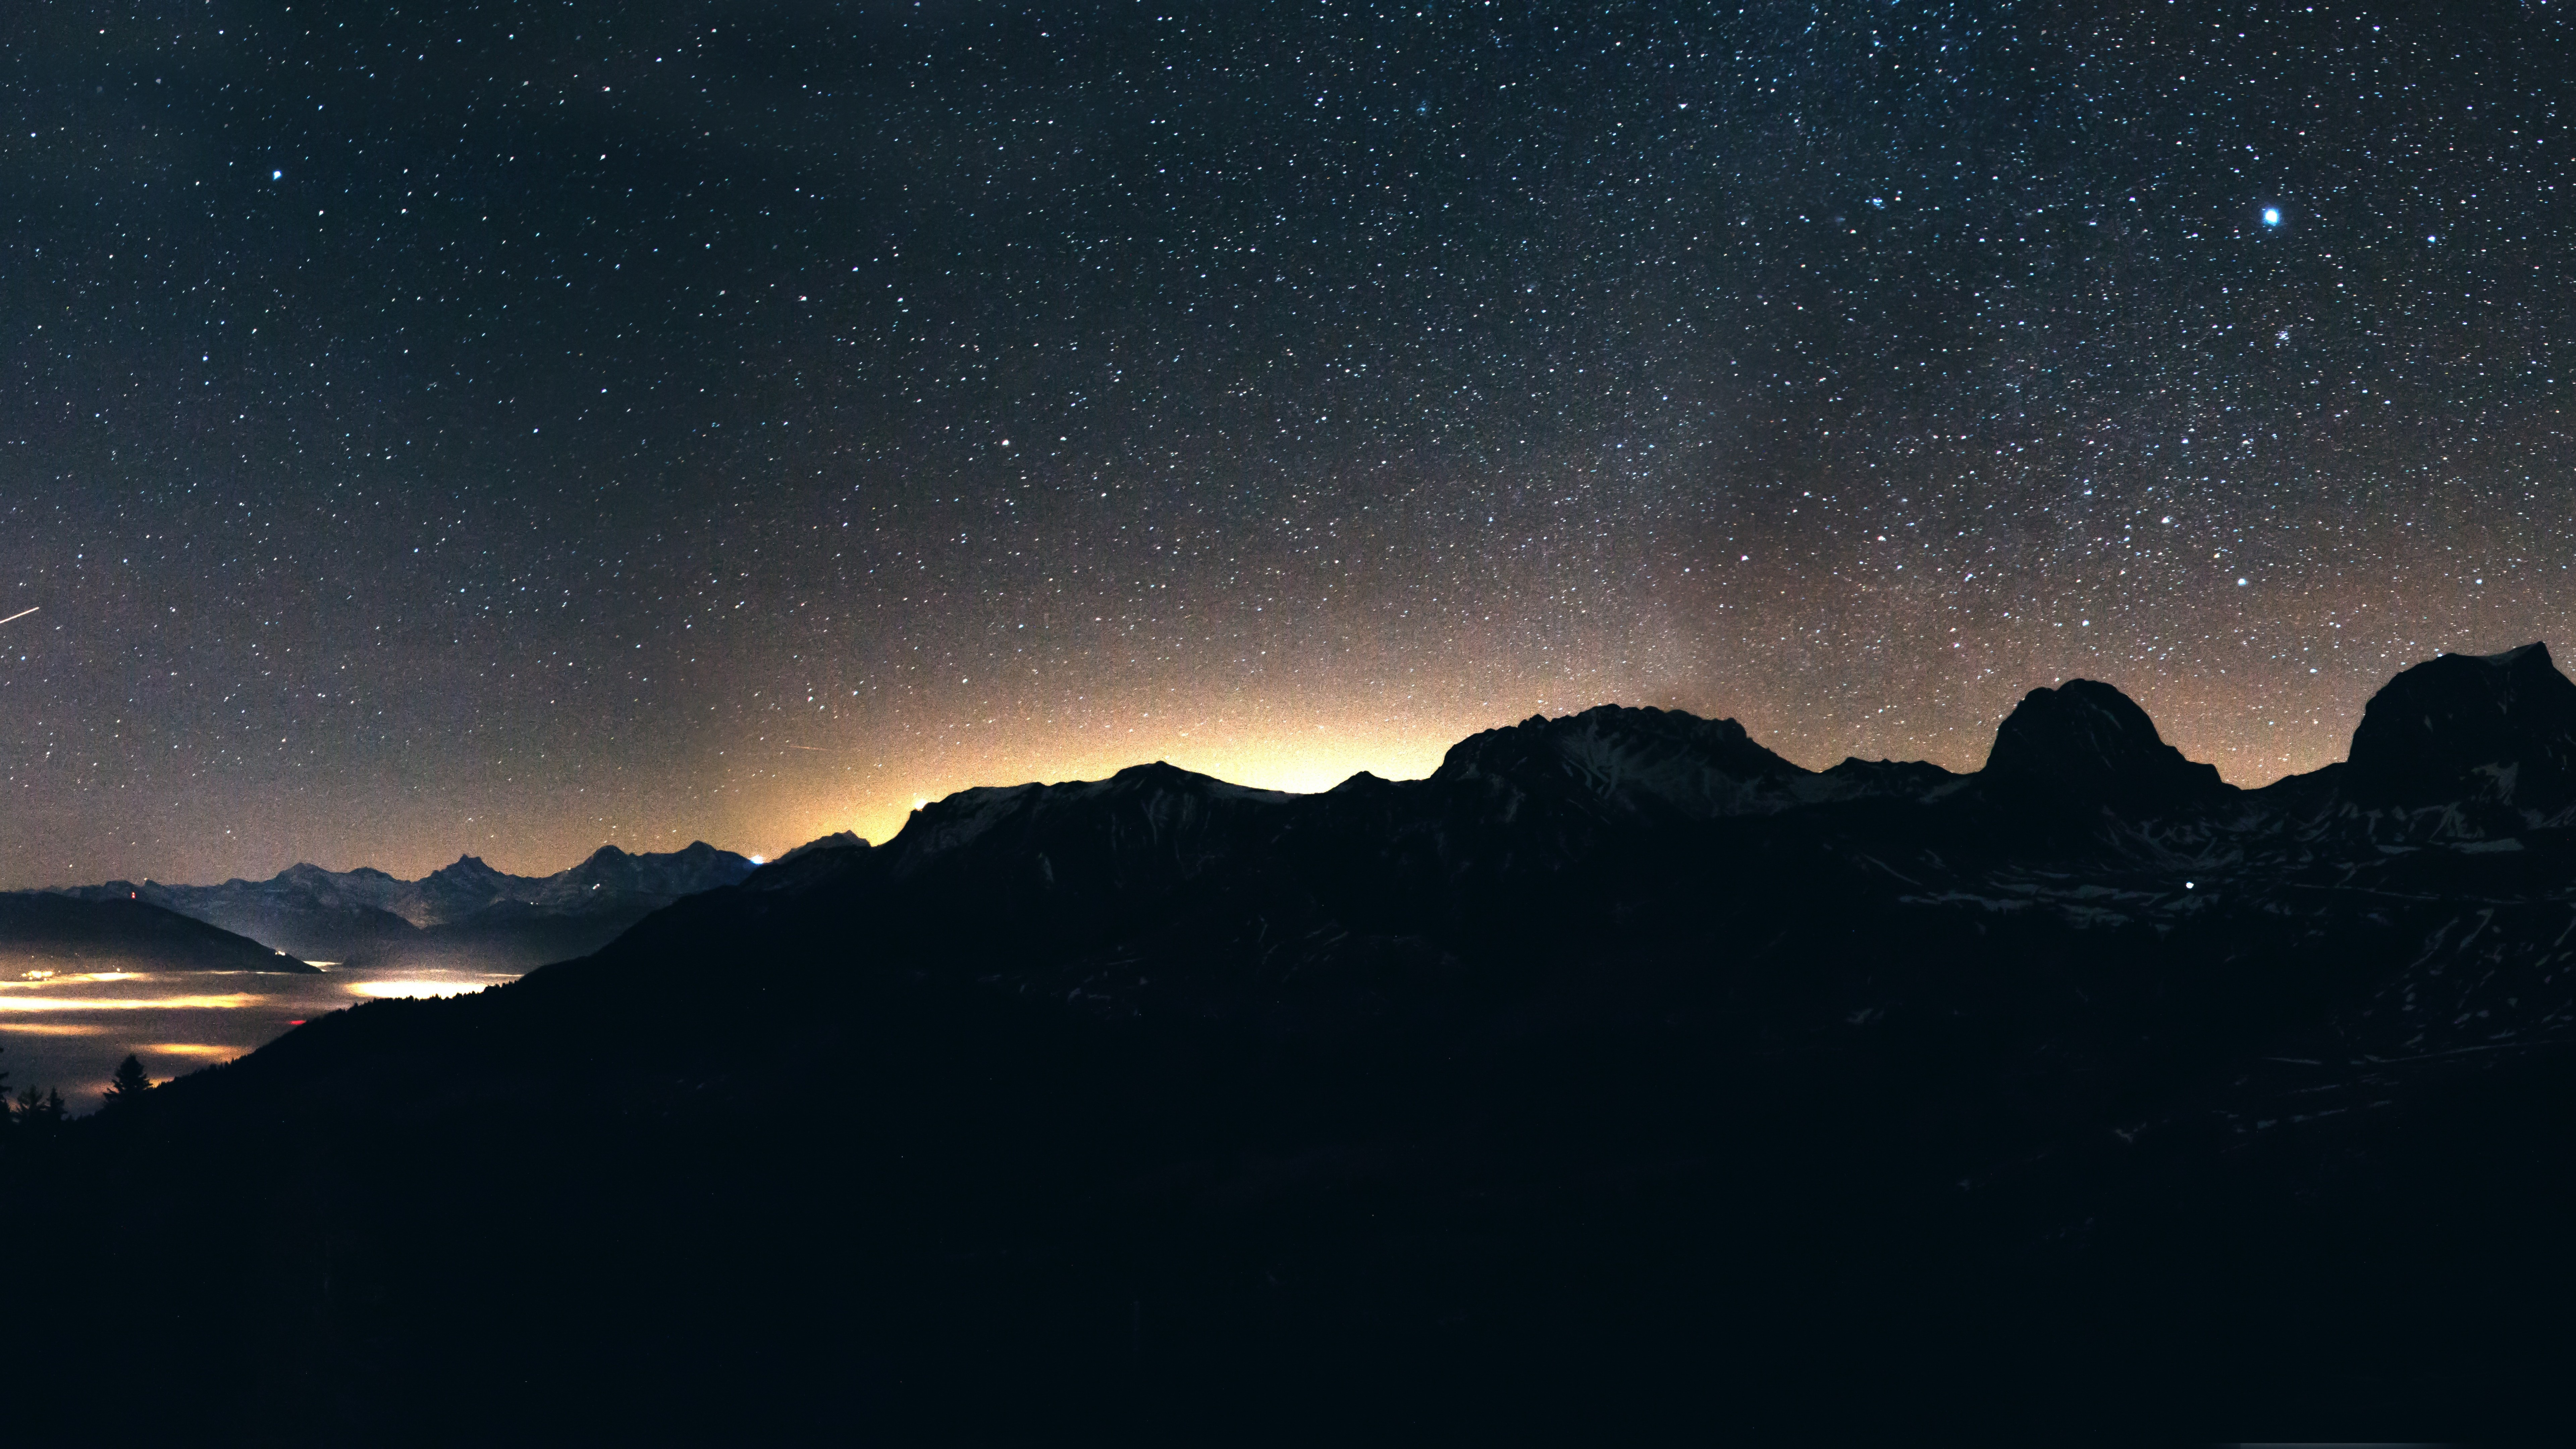 Cool Quotes Wallpapers For Pc Wallpaper Night Sky Mountains 8k Nature 17040